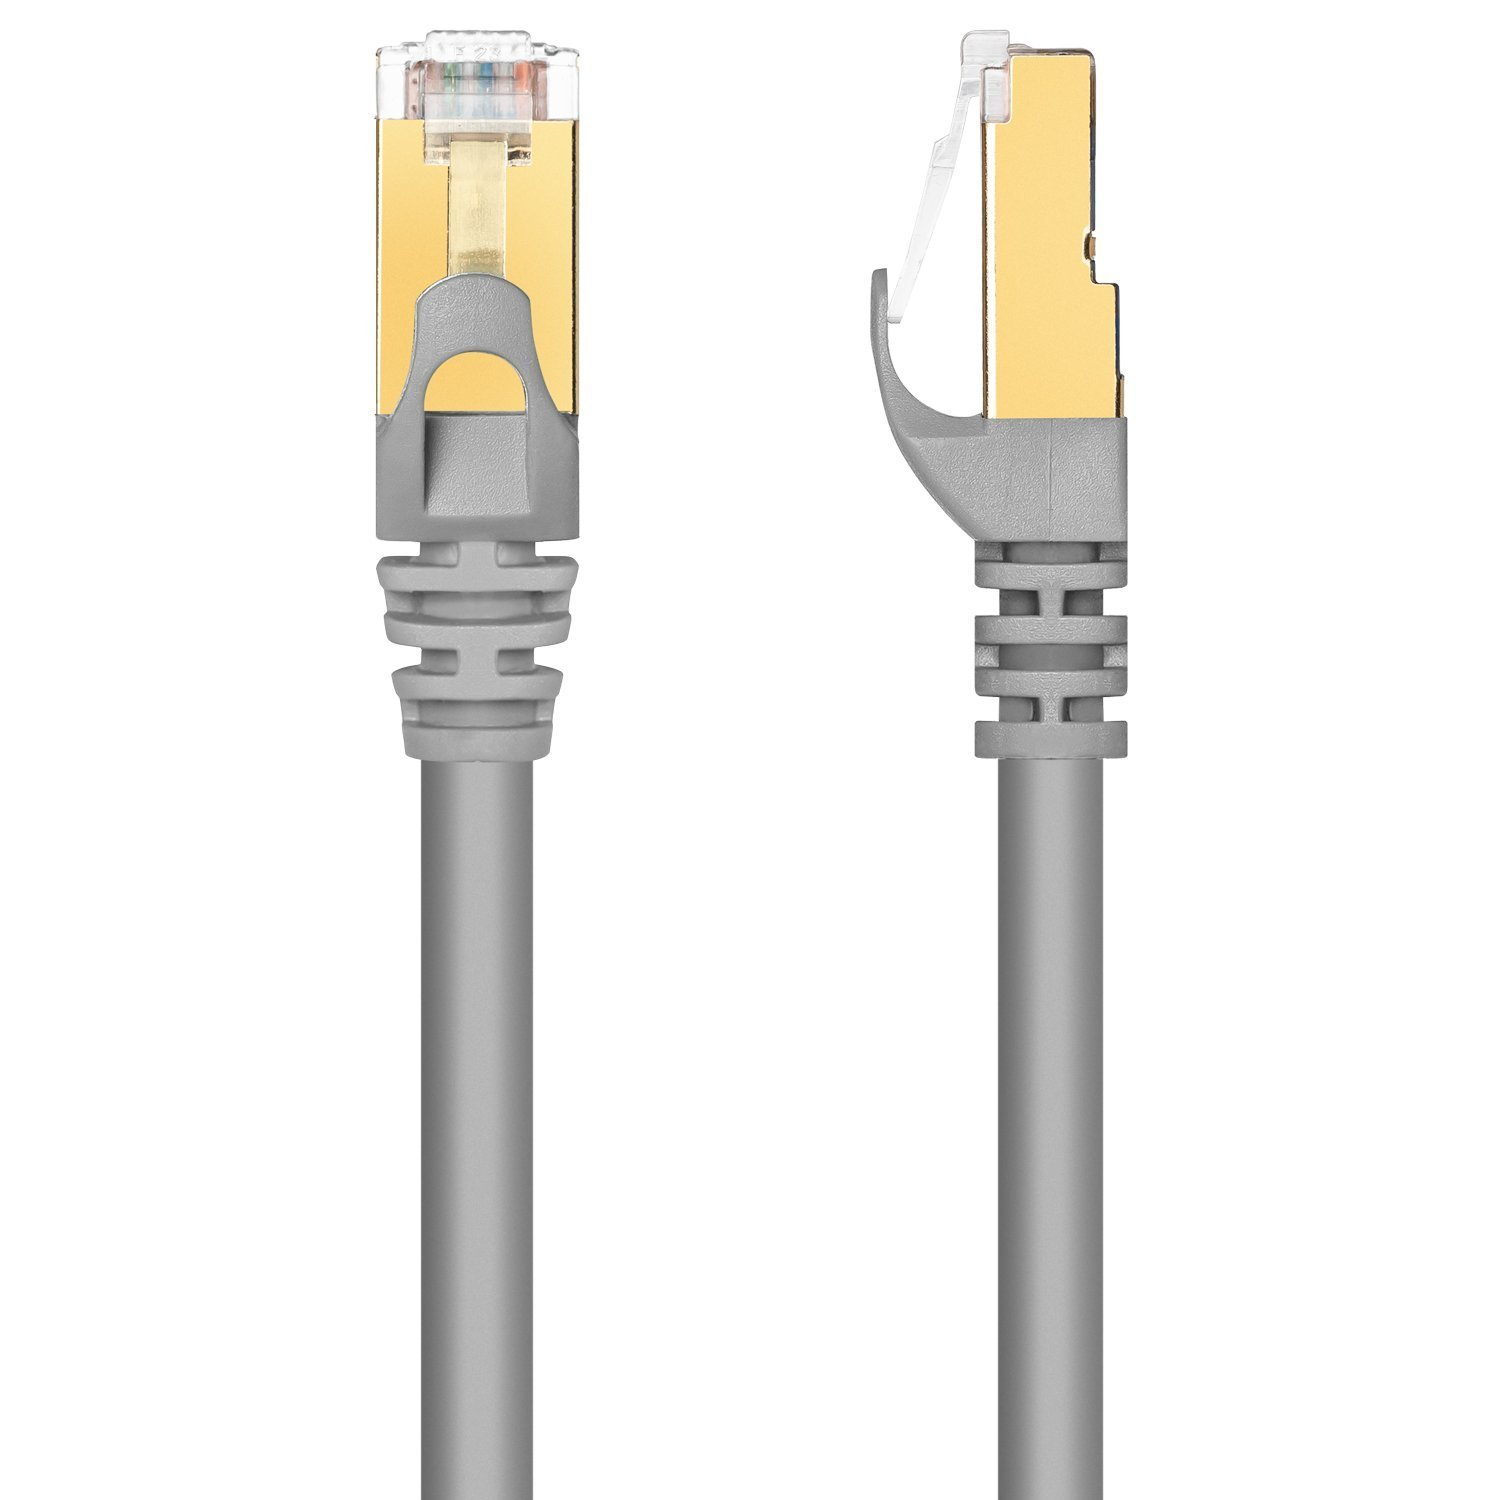 5 Feet 5 Pack Pure Copper RJ45 Gold-Plated Connectors 600 MHz Red 10 Gbps Fast Speed /& Performance Computers to Network Components Maximm Cat7 Ethernet Cable